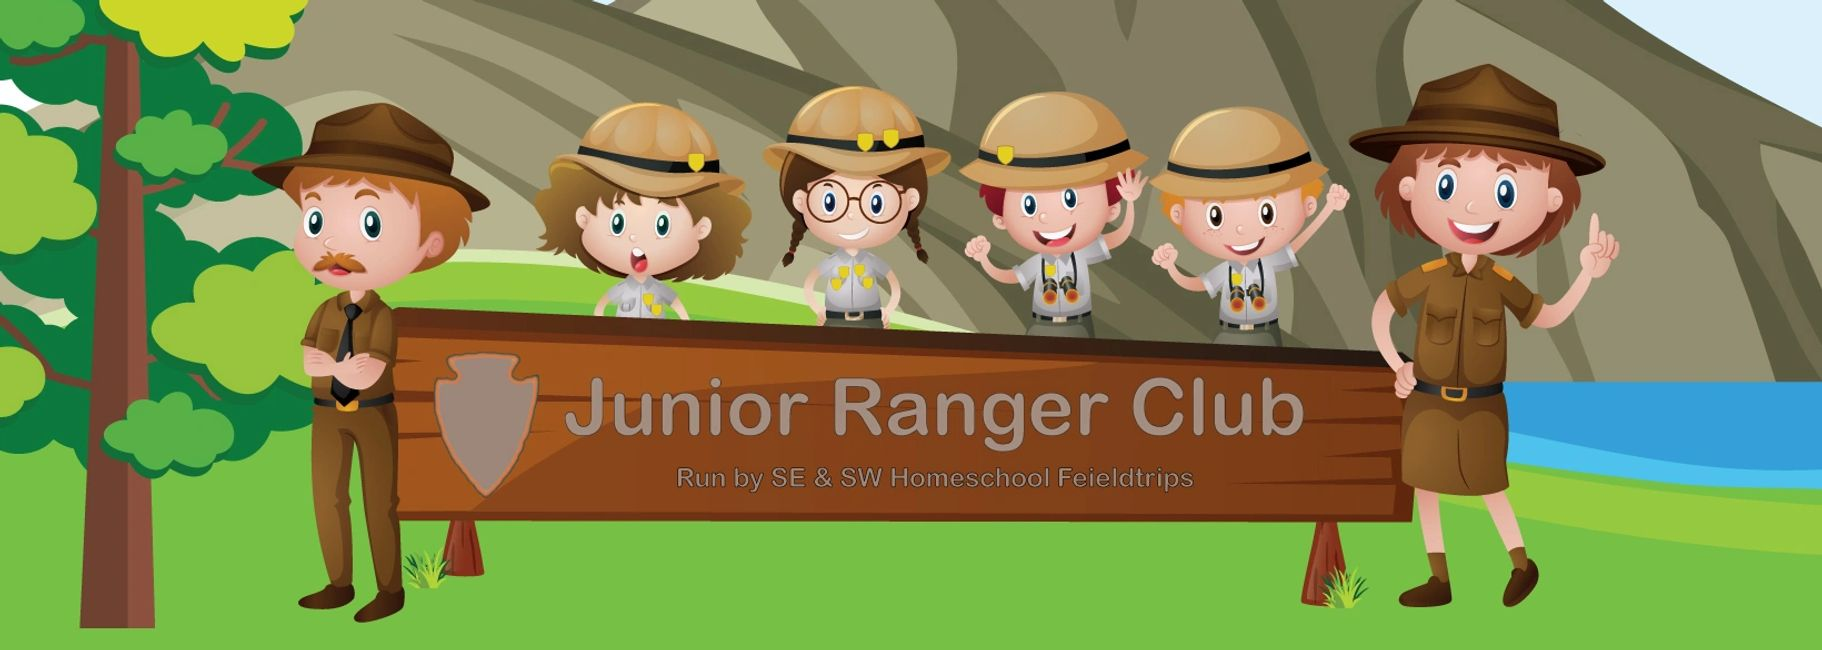 Junior Ranger Club